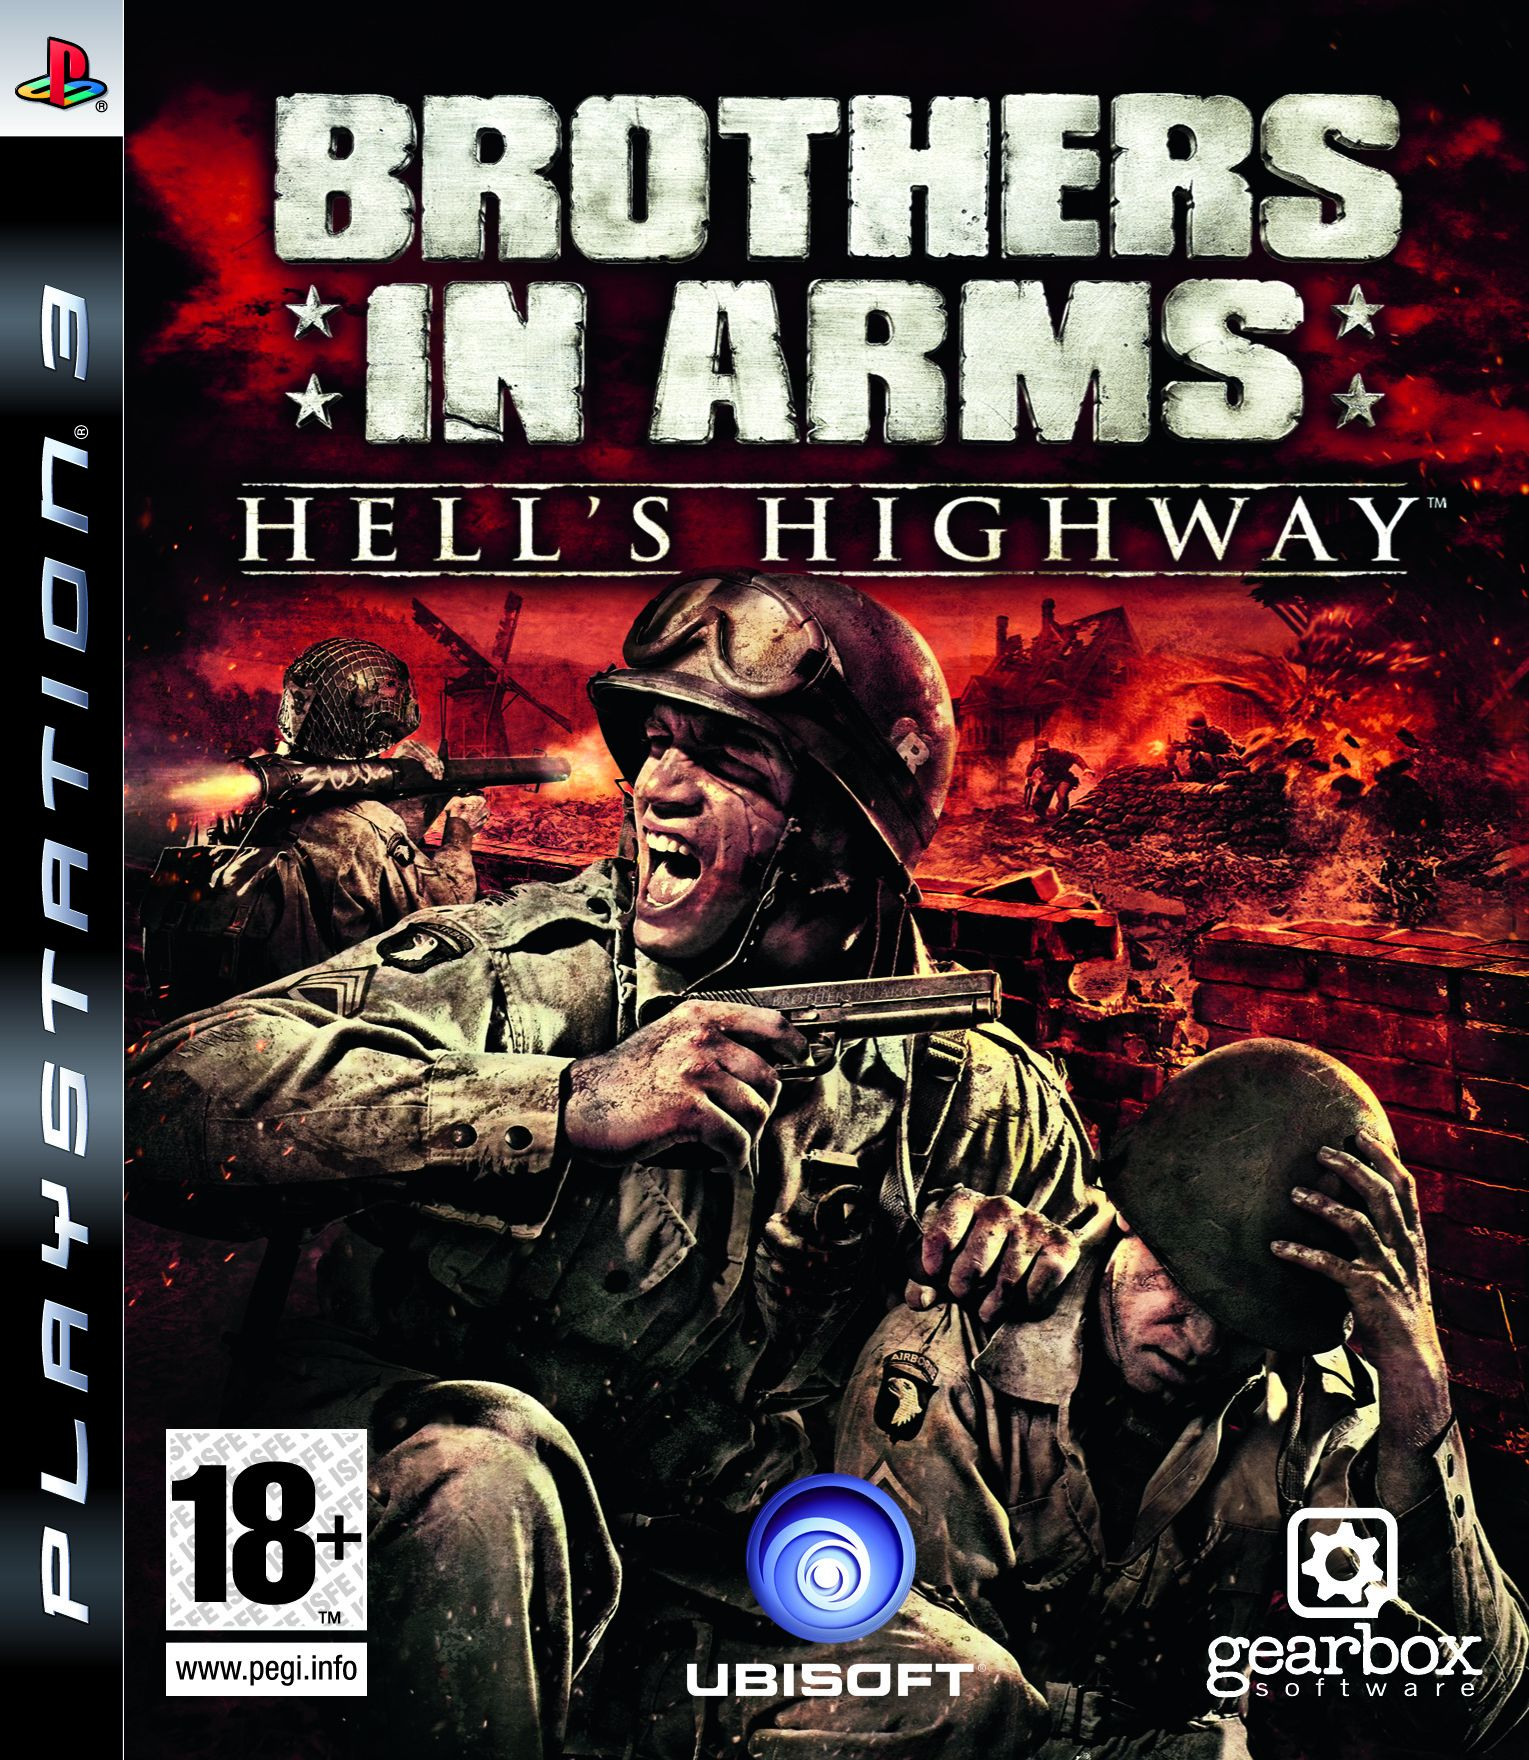 Brothers in Arms: Hells Highway